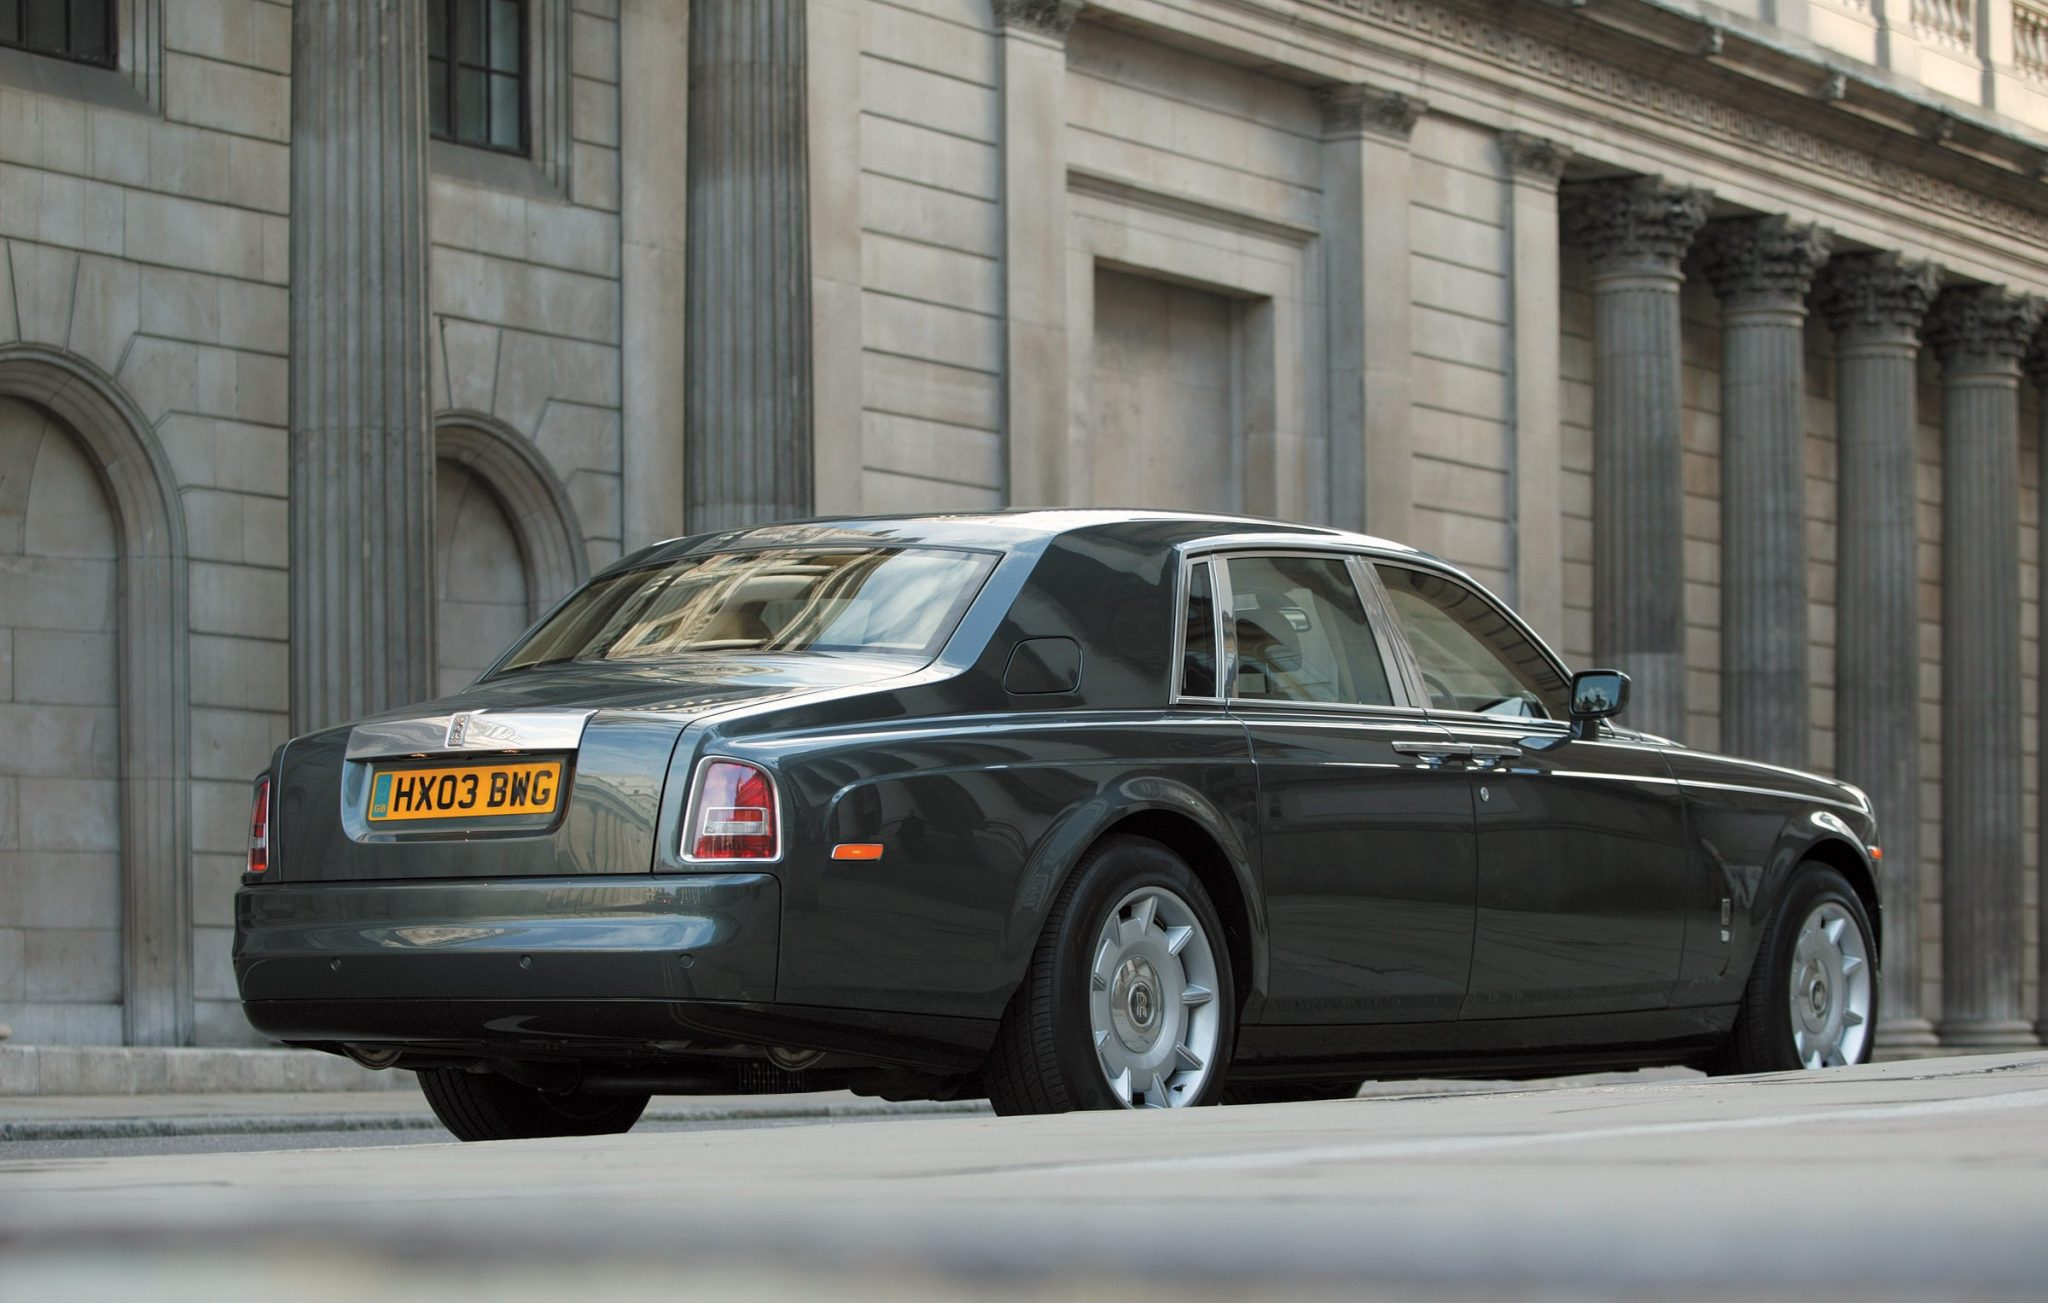 2004 Rolls-Royce Phantom Rear